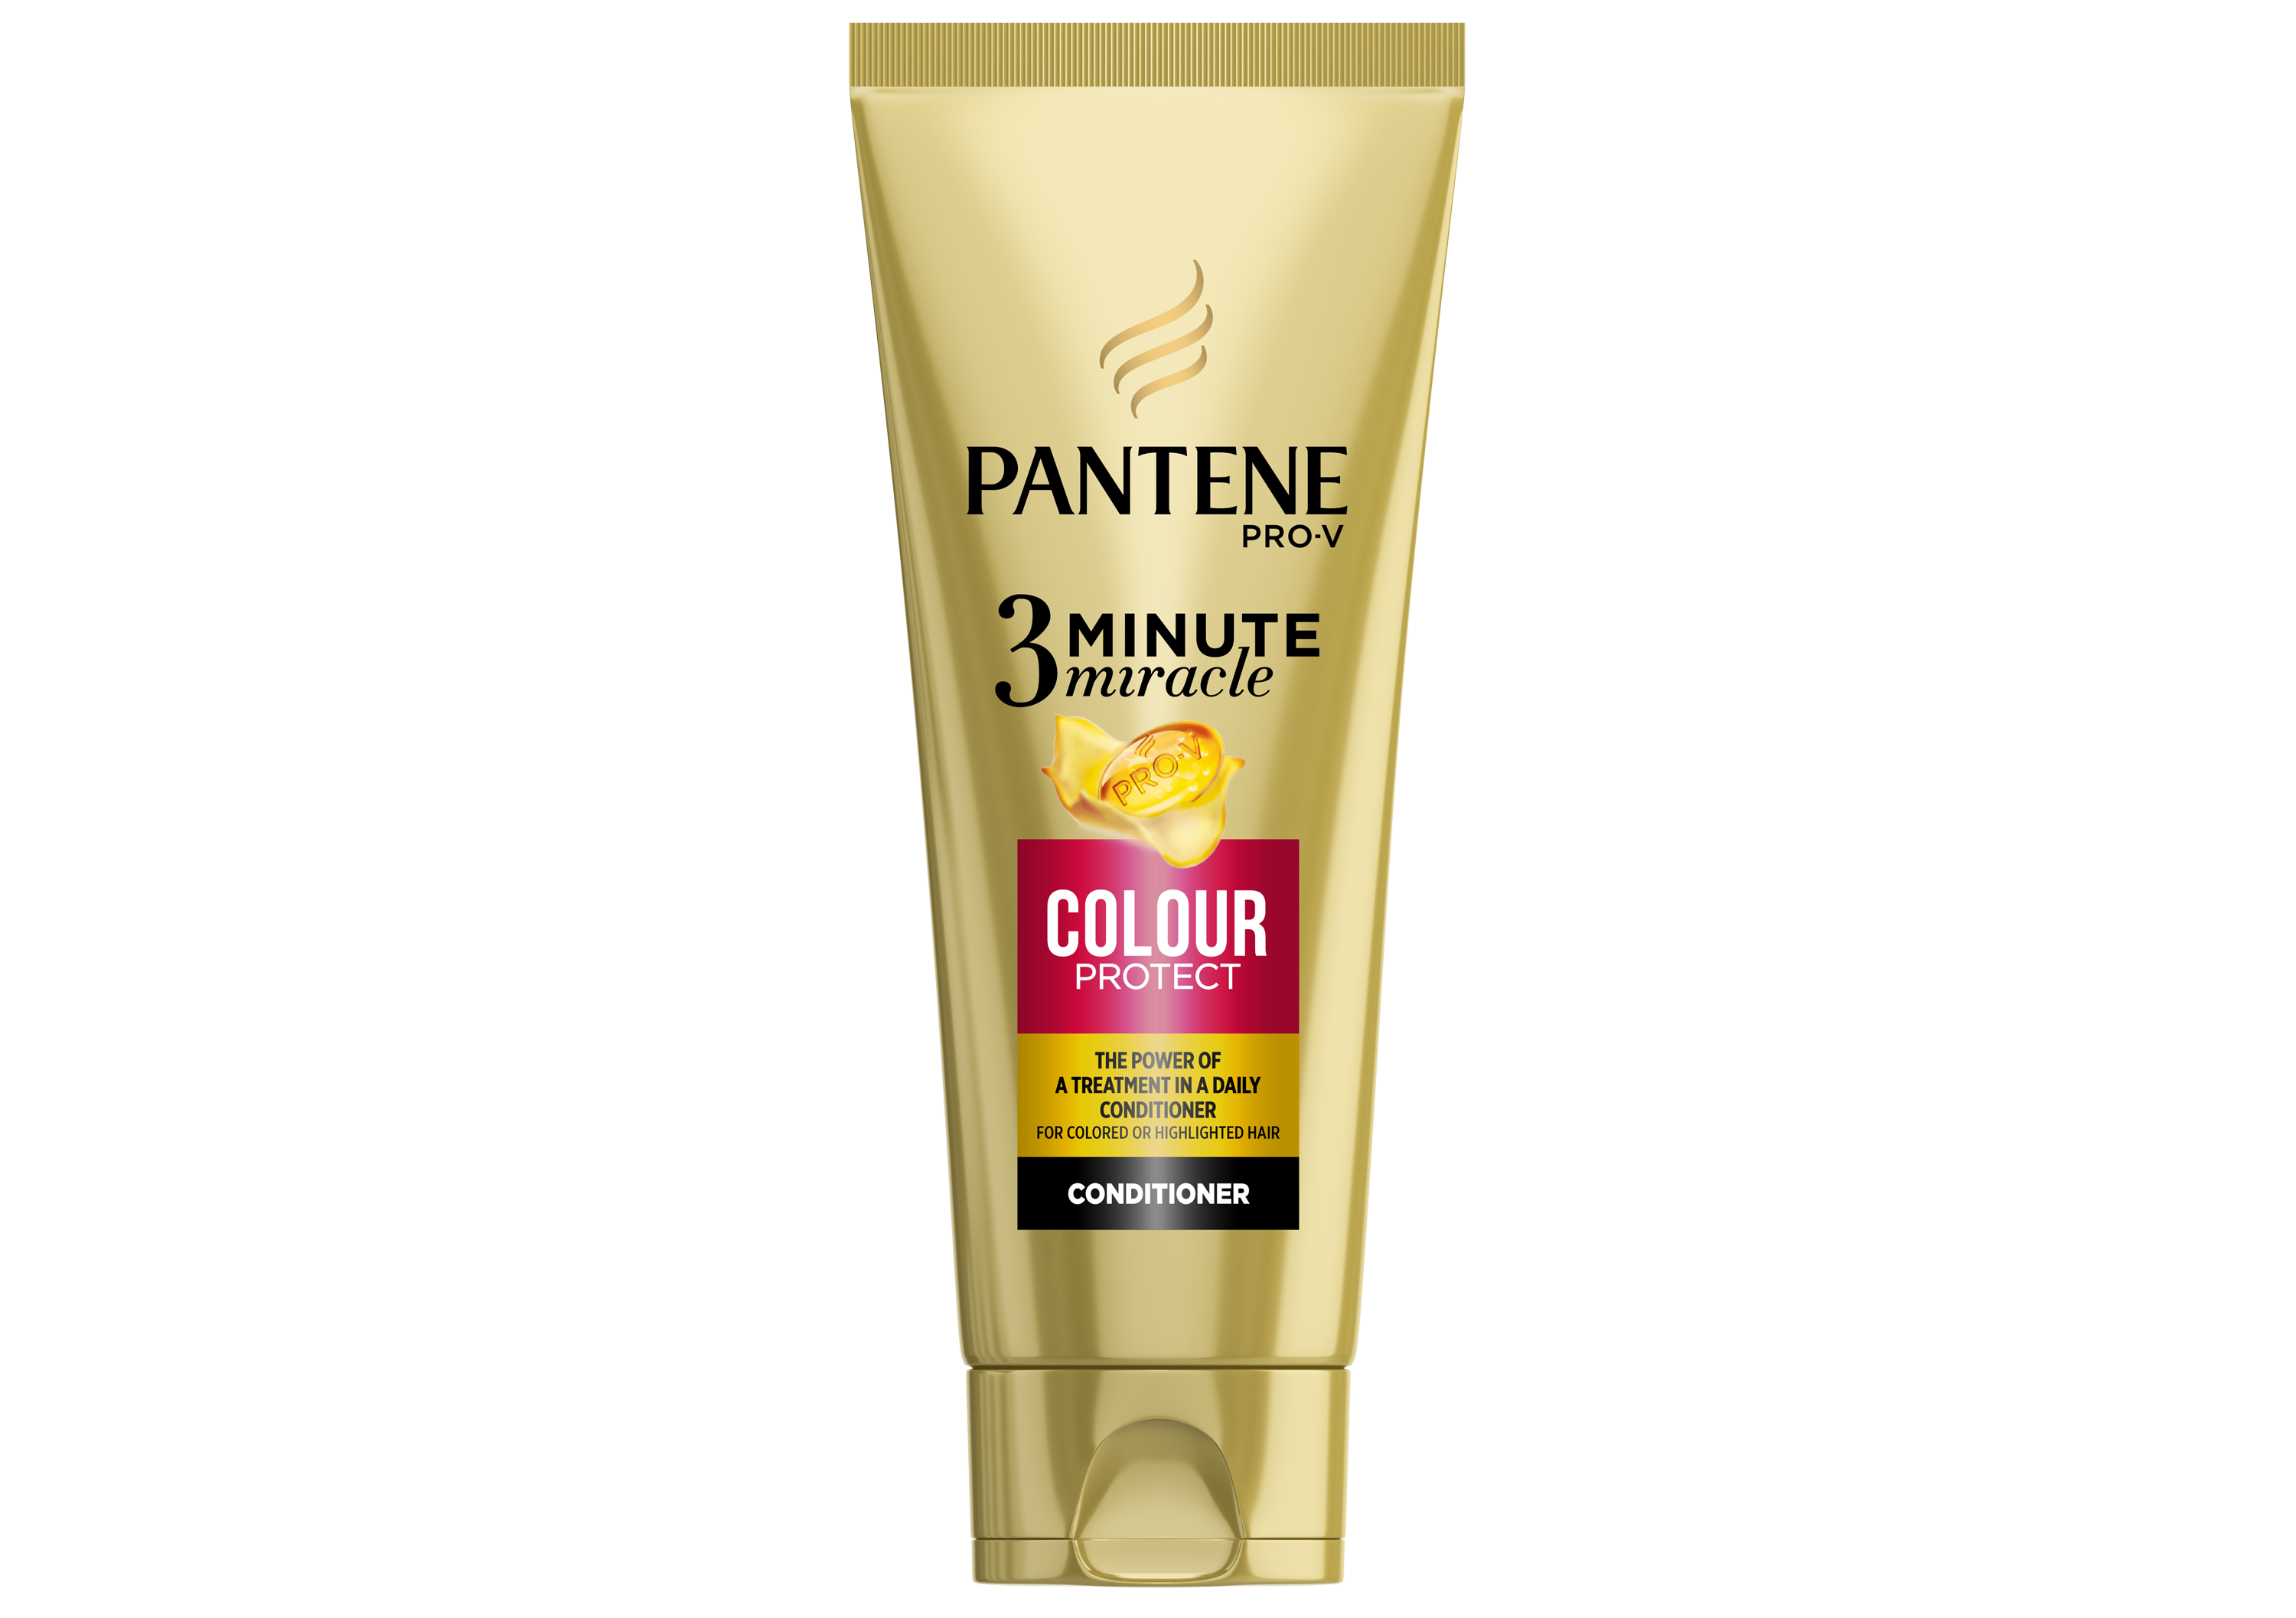 Pantene 3 Minute Miracle Colour Protect